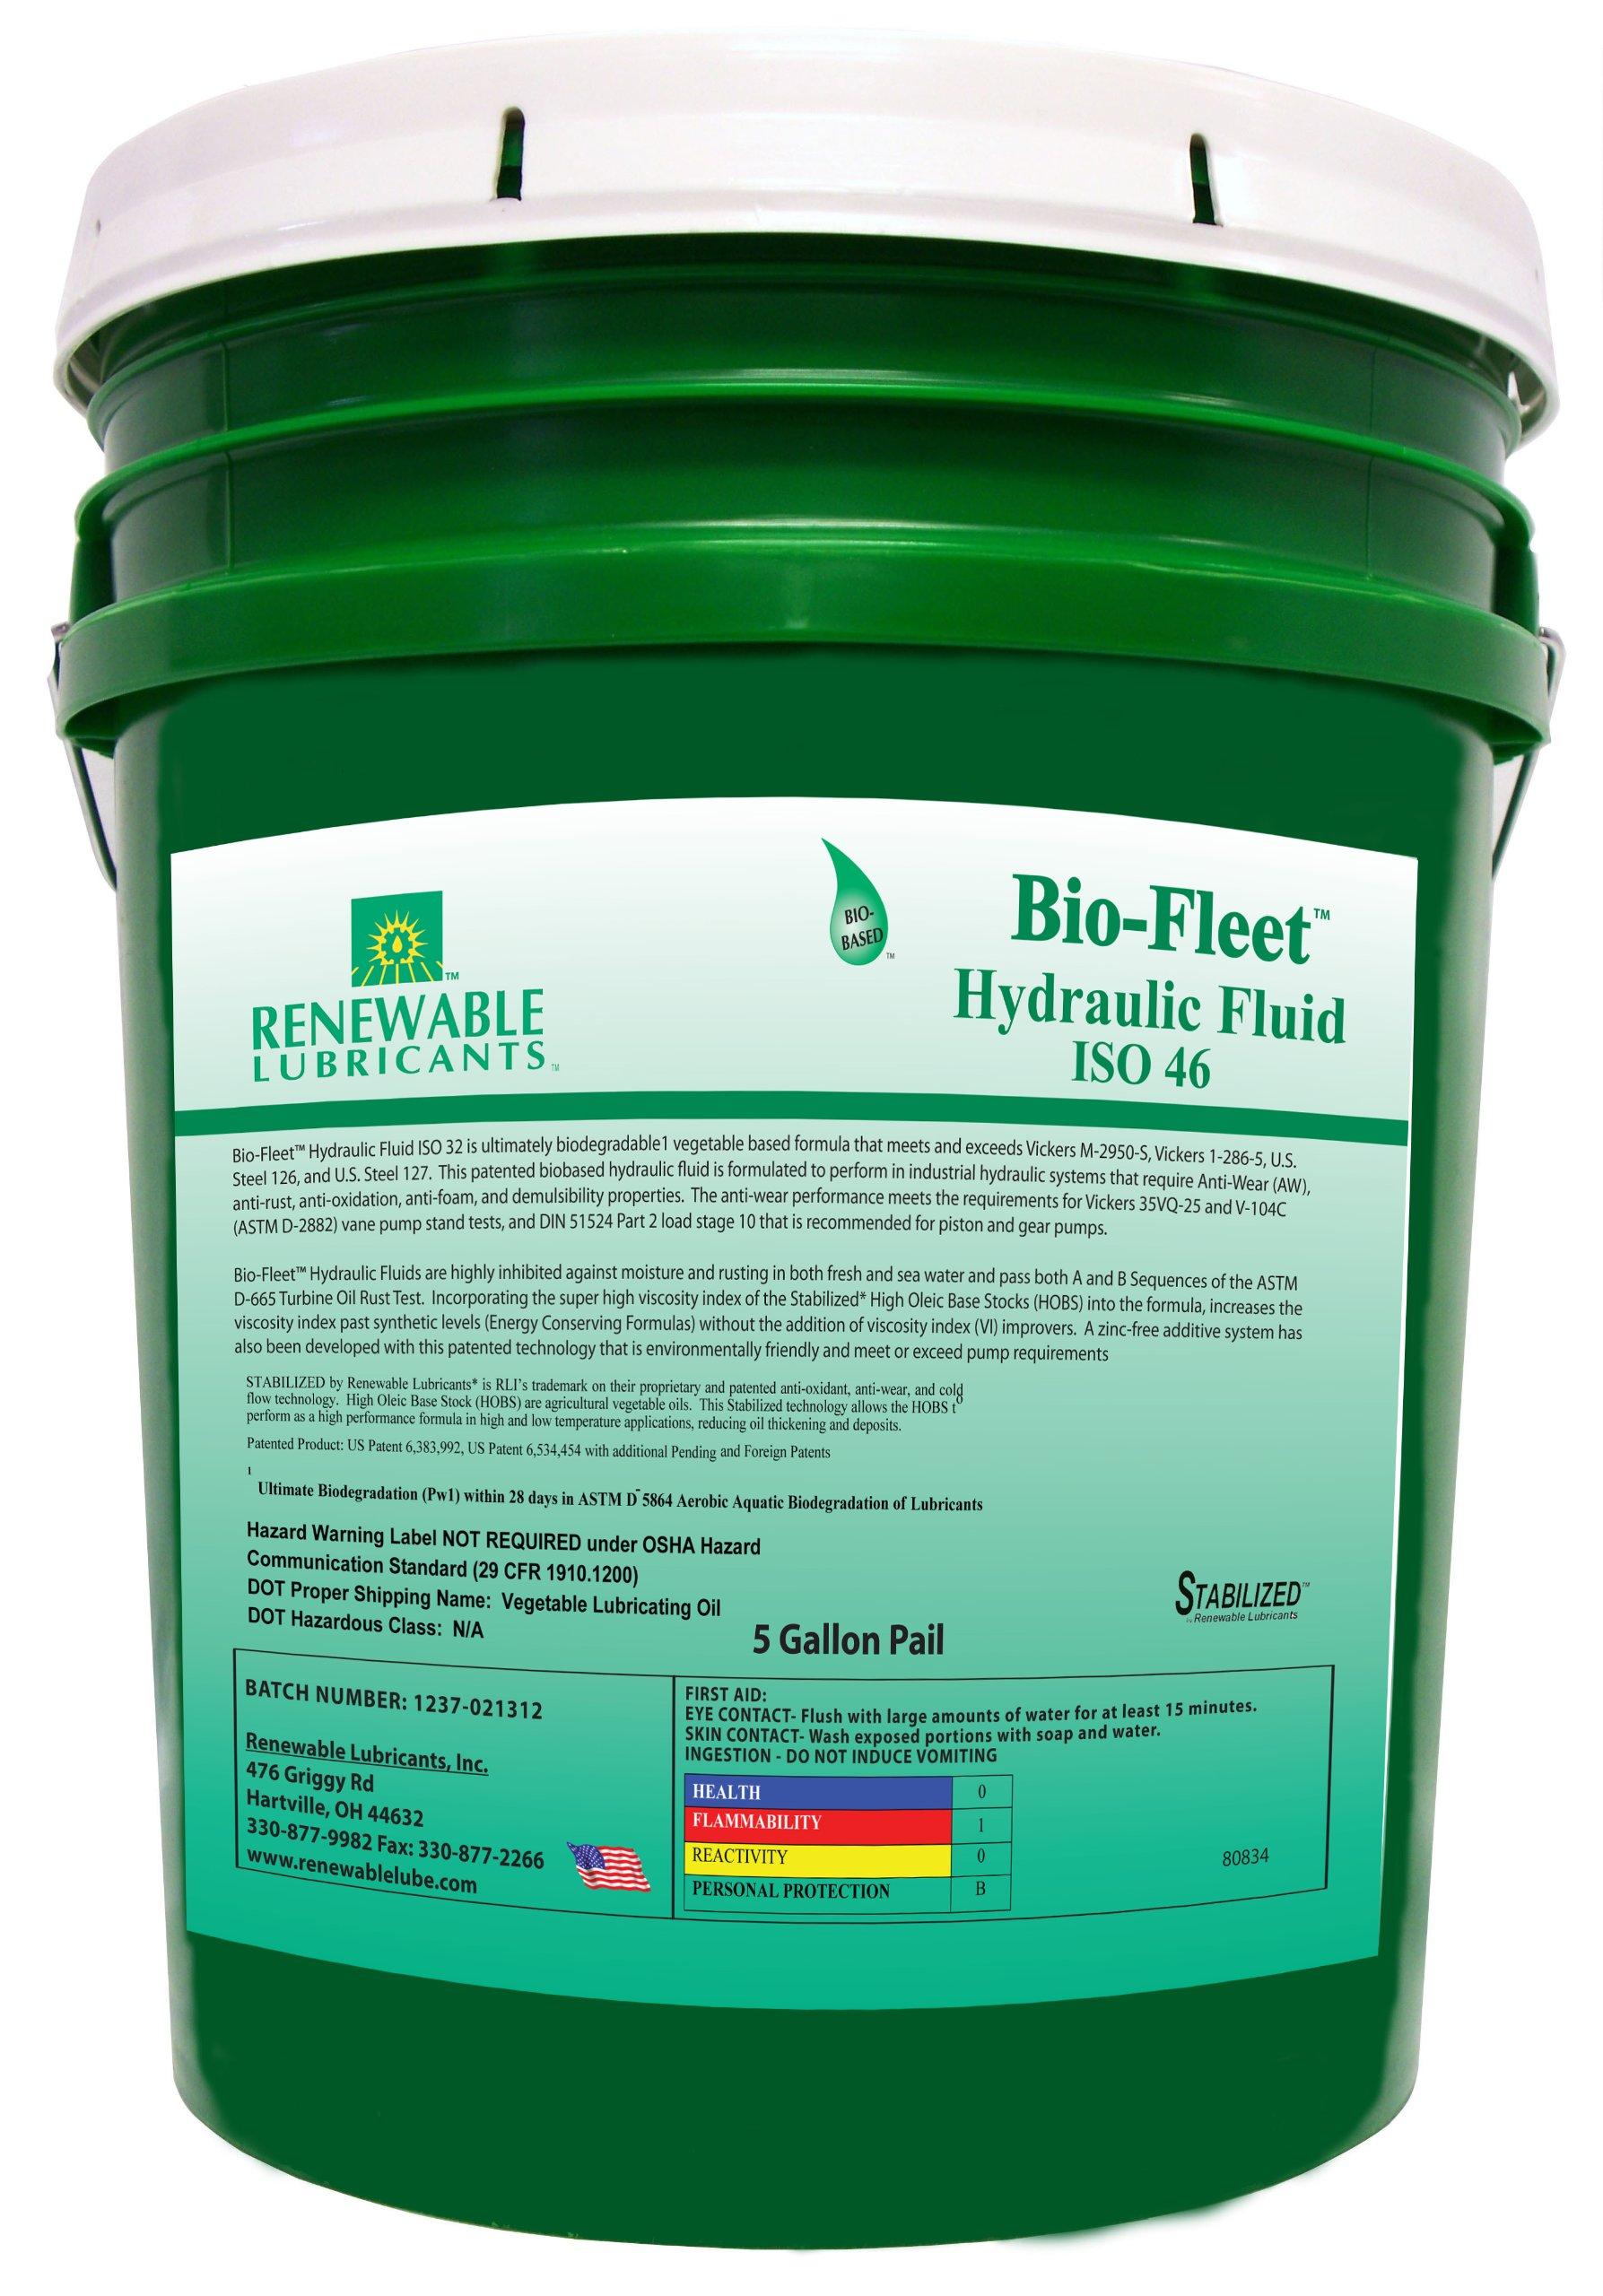 Renewable Lubricants Bio-Fleet ISO 46 Hydraulic Lubricant, 5 Gallon Pail by Renewable Lubricants